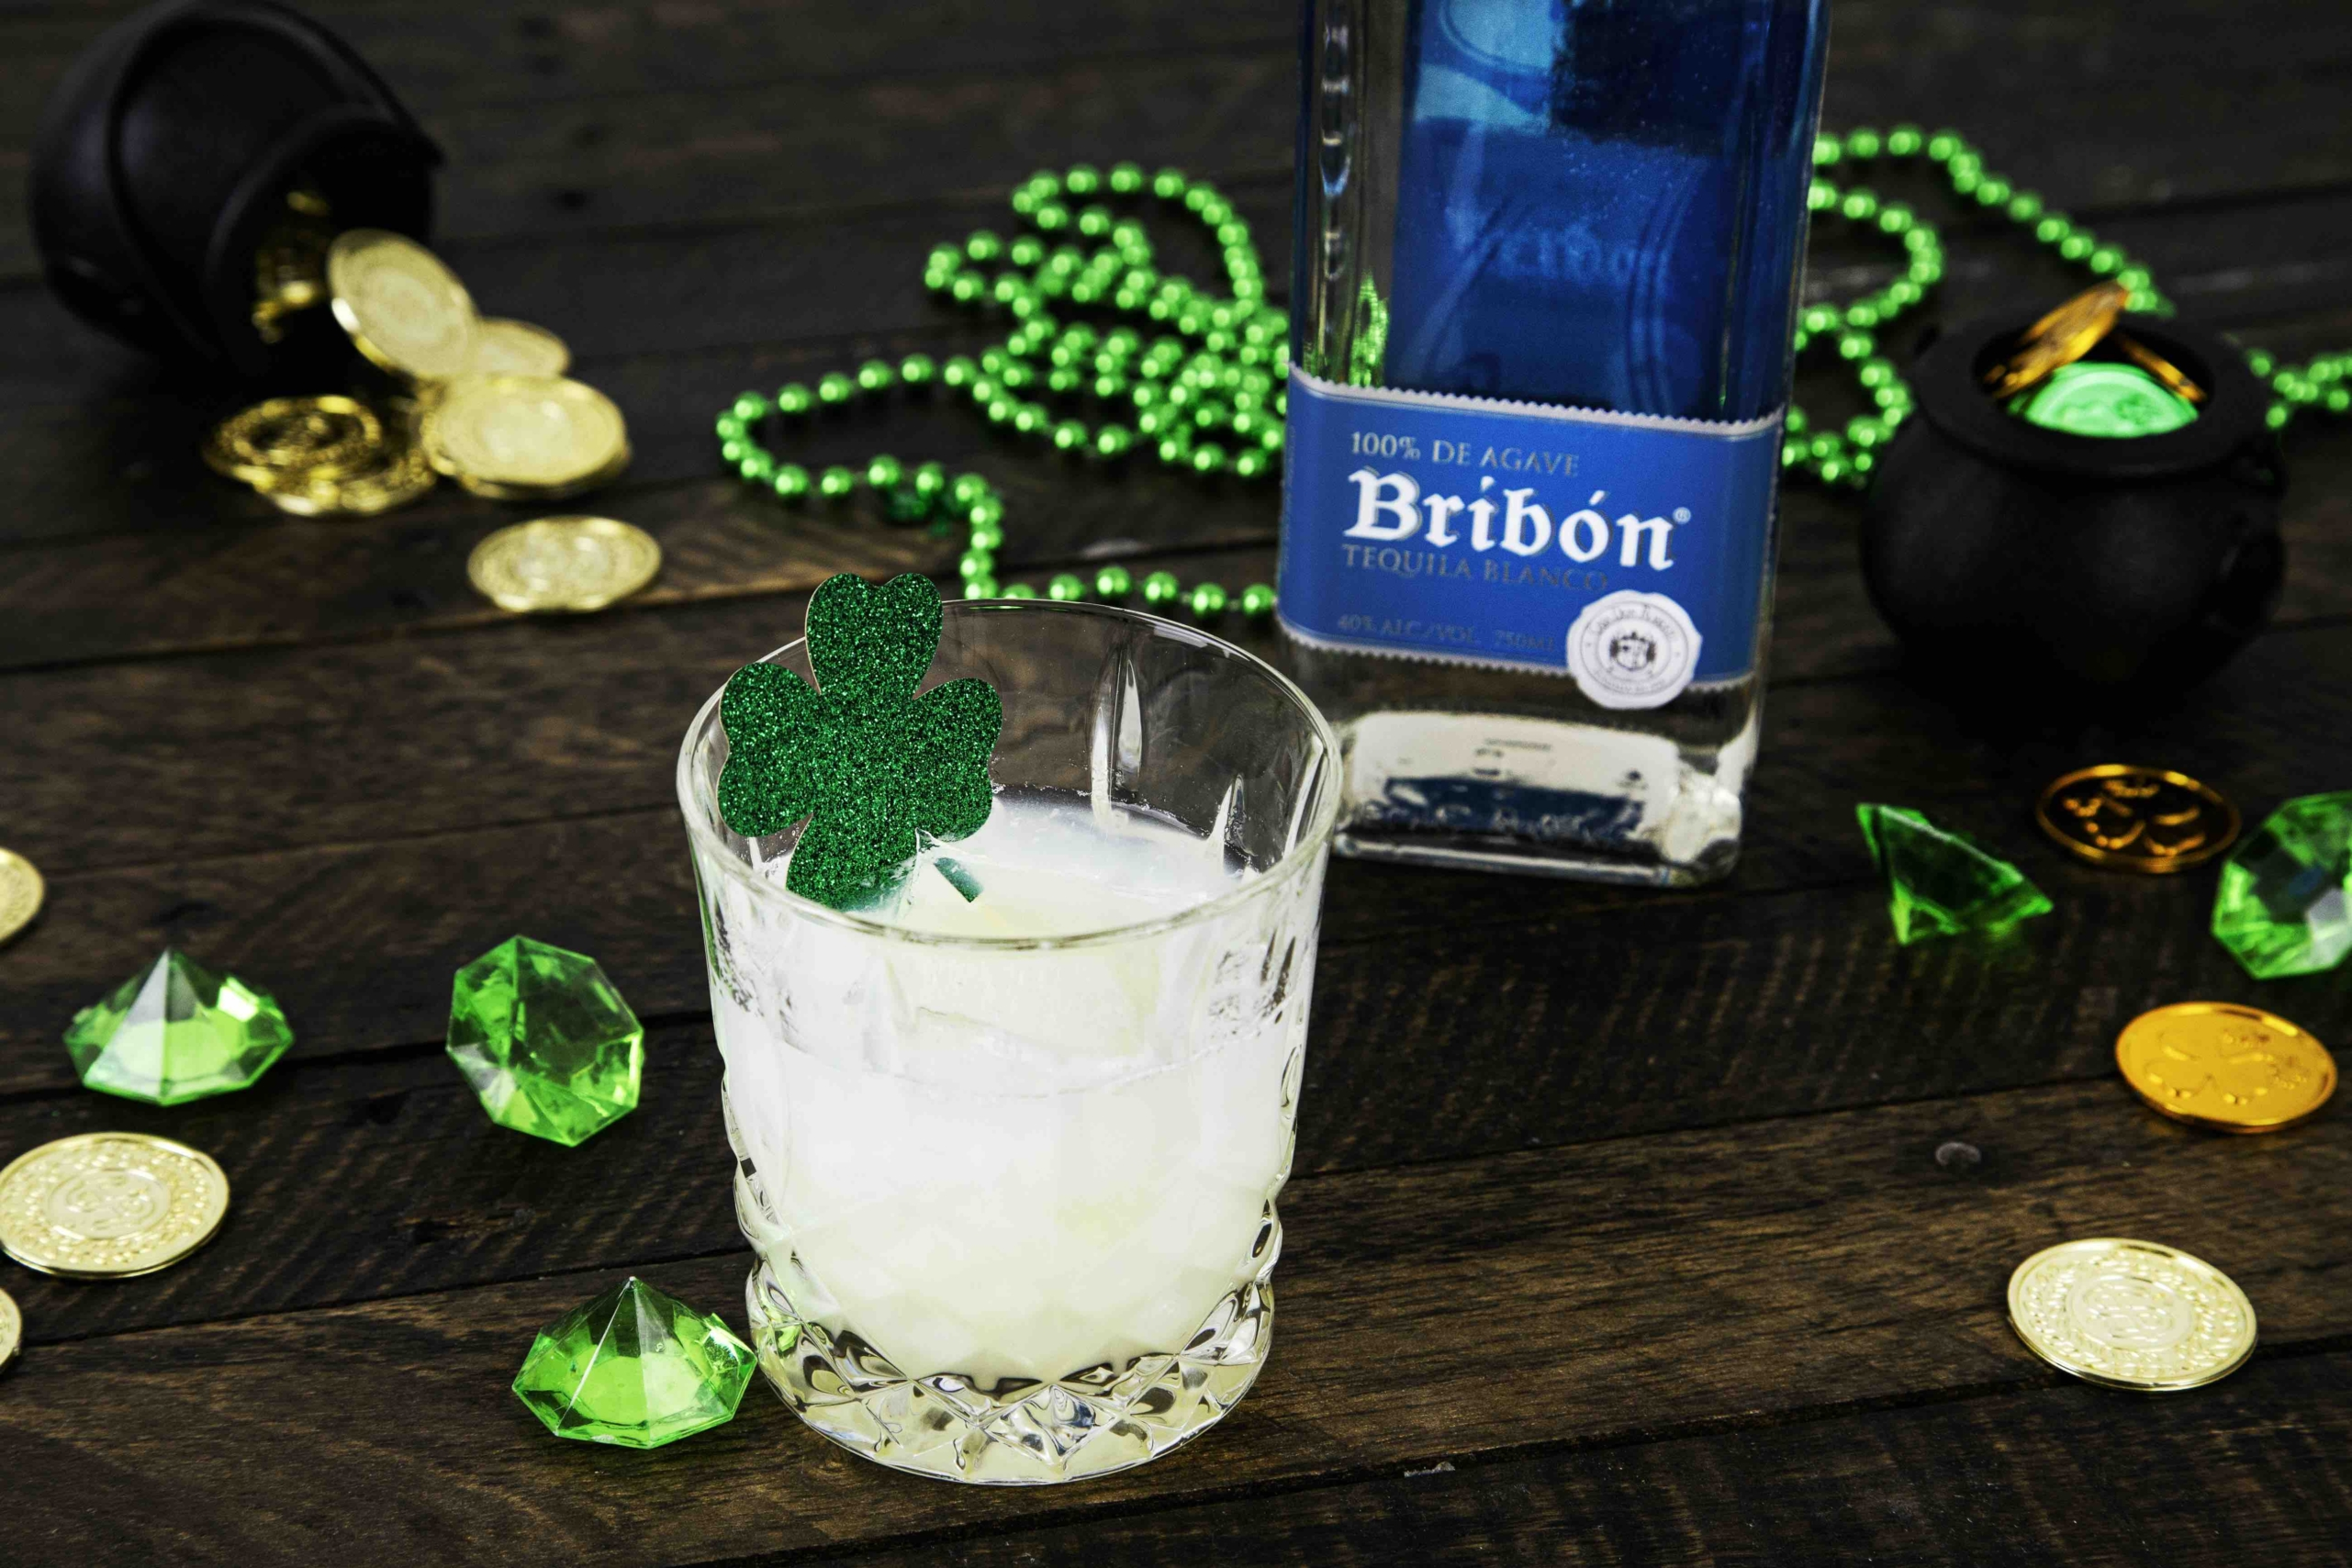 This Tequila Cocktail Is One Of the St Patrick's Day Cocktail Recipes For Home Entertaining